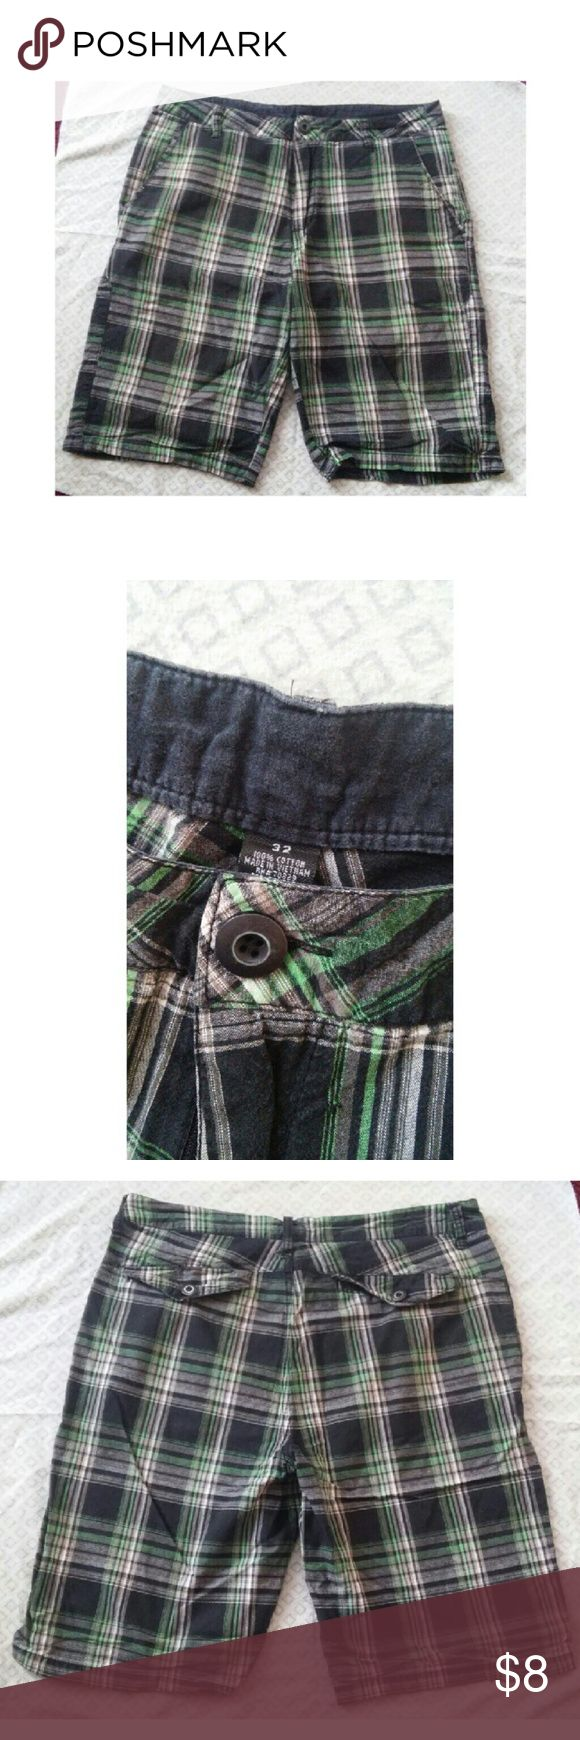 Men's plaid shorts size 32 Men's plaid shorts Size 32 Buttoned back pockets Last picture shows the color of them close up.  No flaws. Shorts